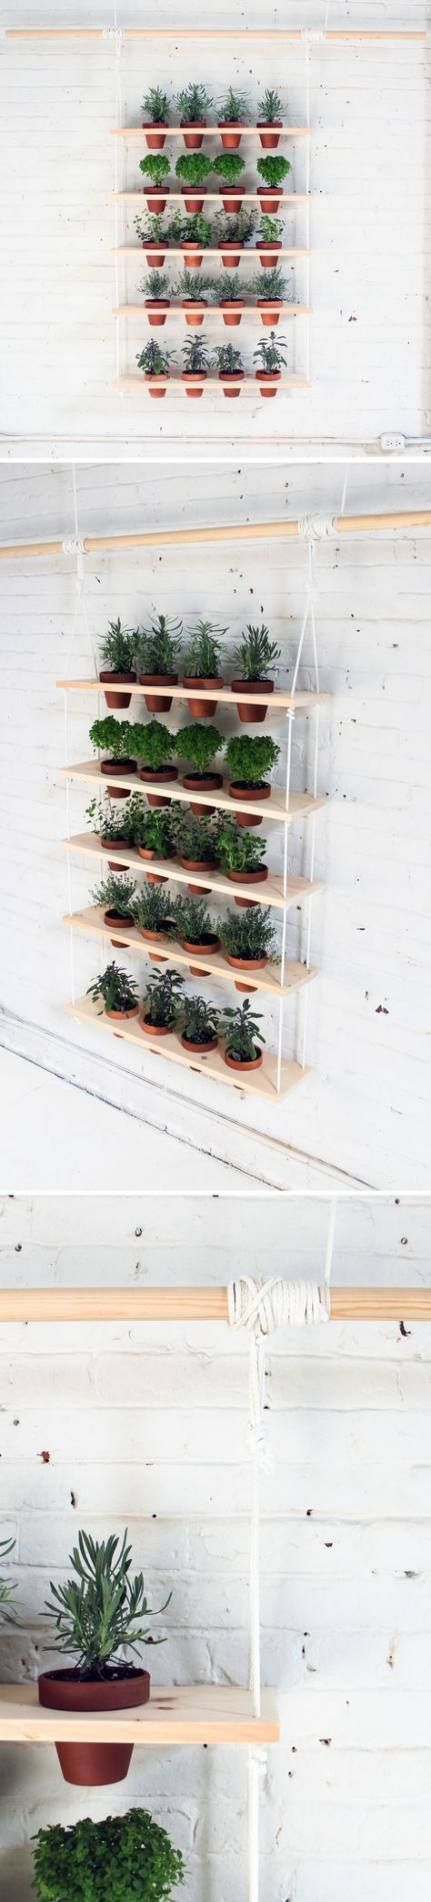 32 ideas backyard garden boxes tutorials #kräutergartenbalkon